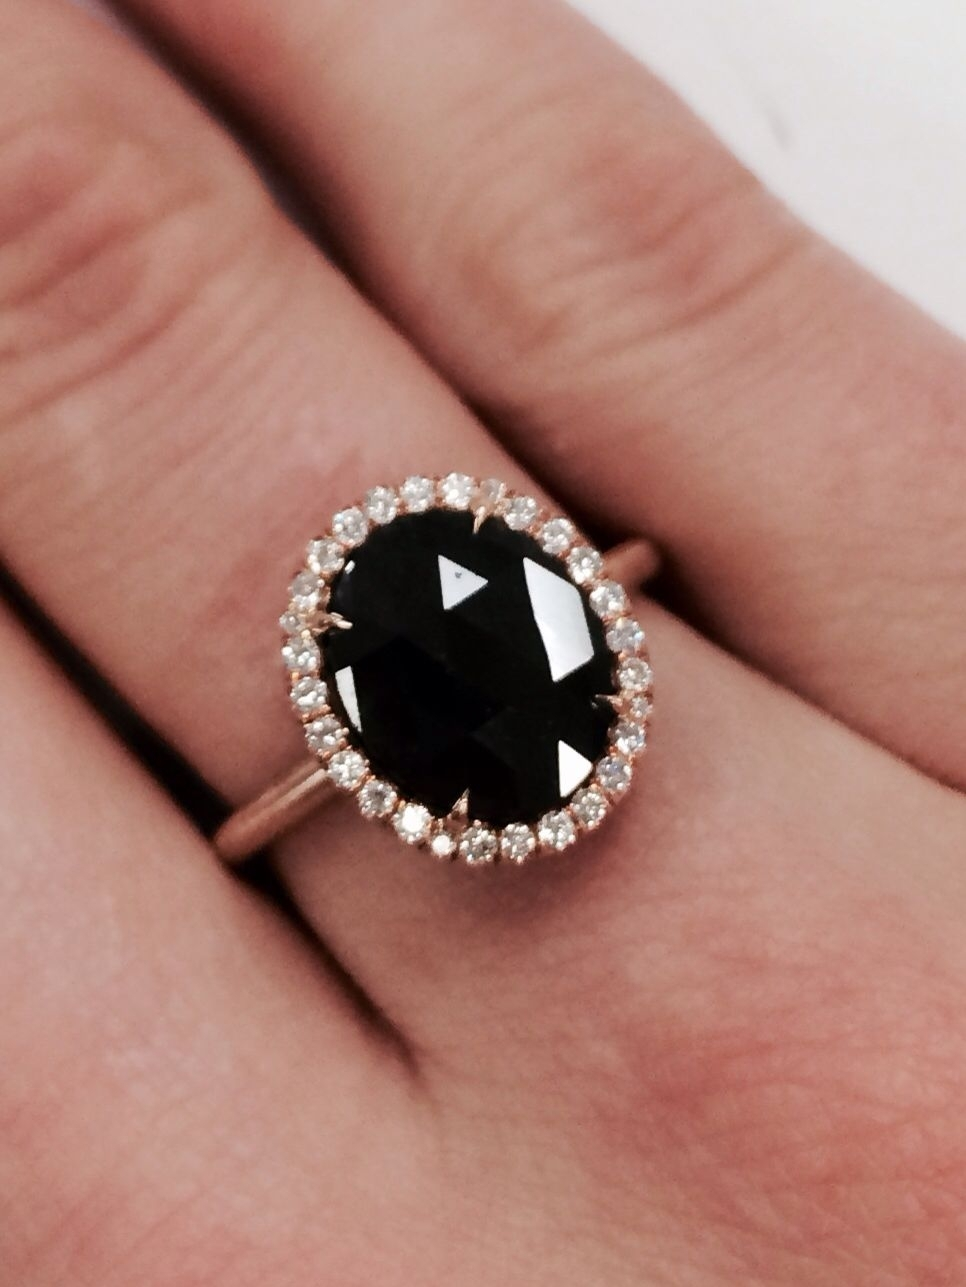 15 Non Traditional Engagement Rings Worth Considering | Jewels Inside 2018 Vintage Style Black Diamond Engagement Rings (View 1 of 15)